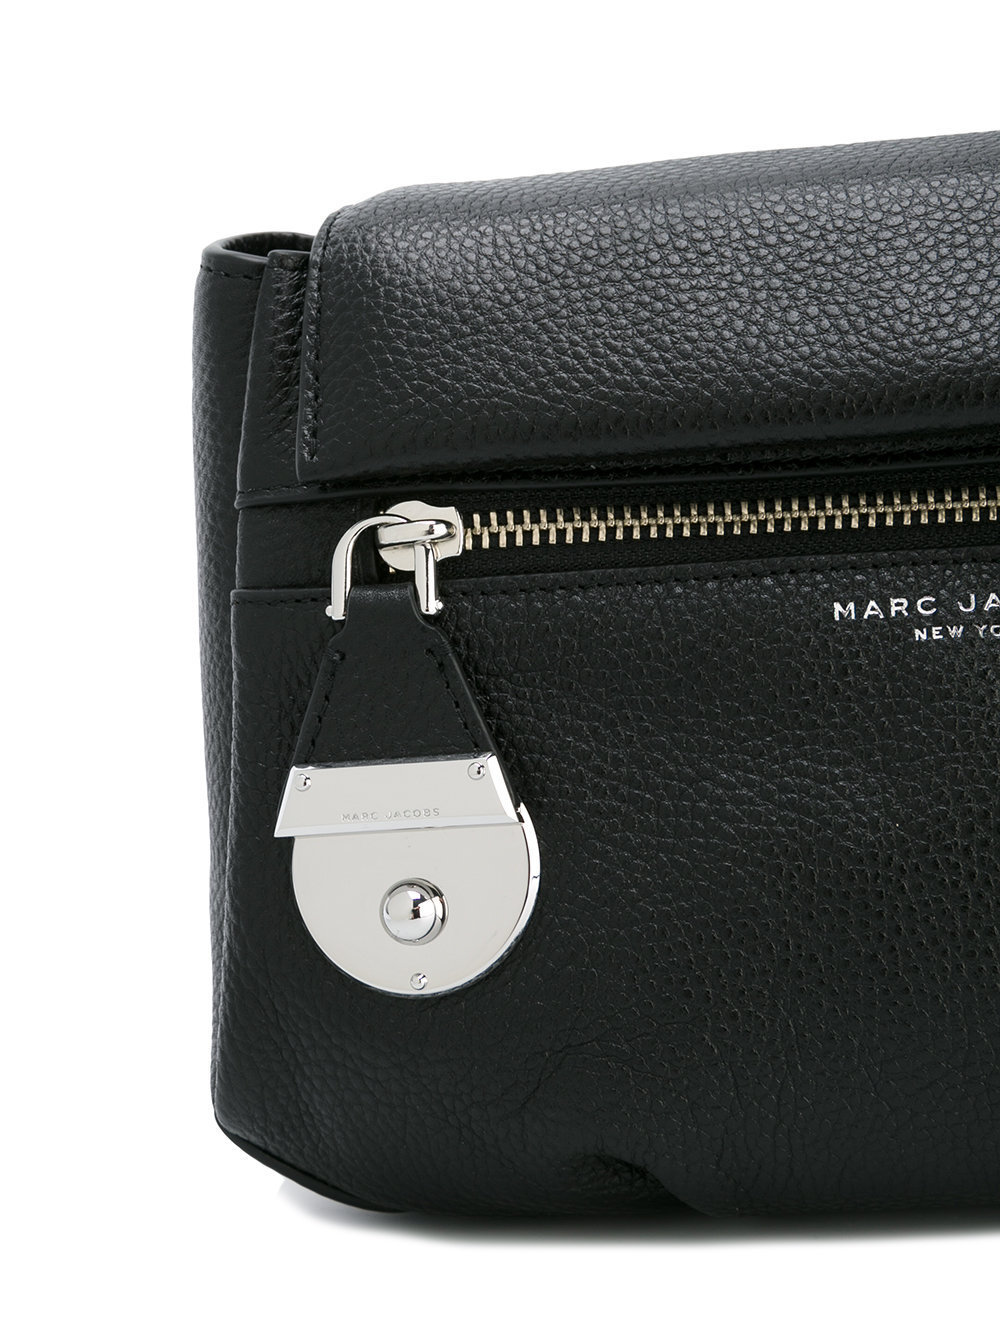 Marc Jacobs  斜めがけバッグ